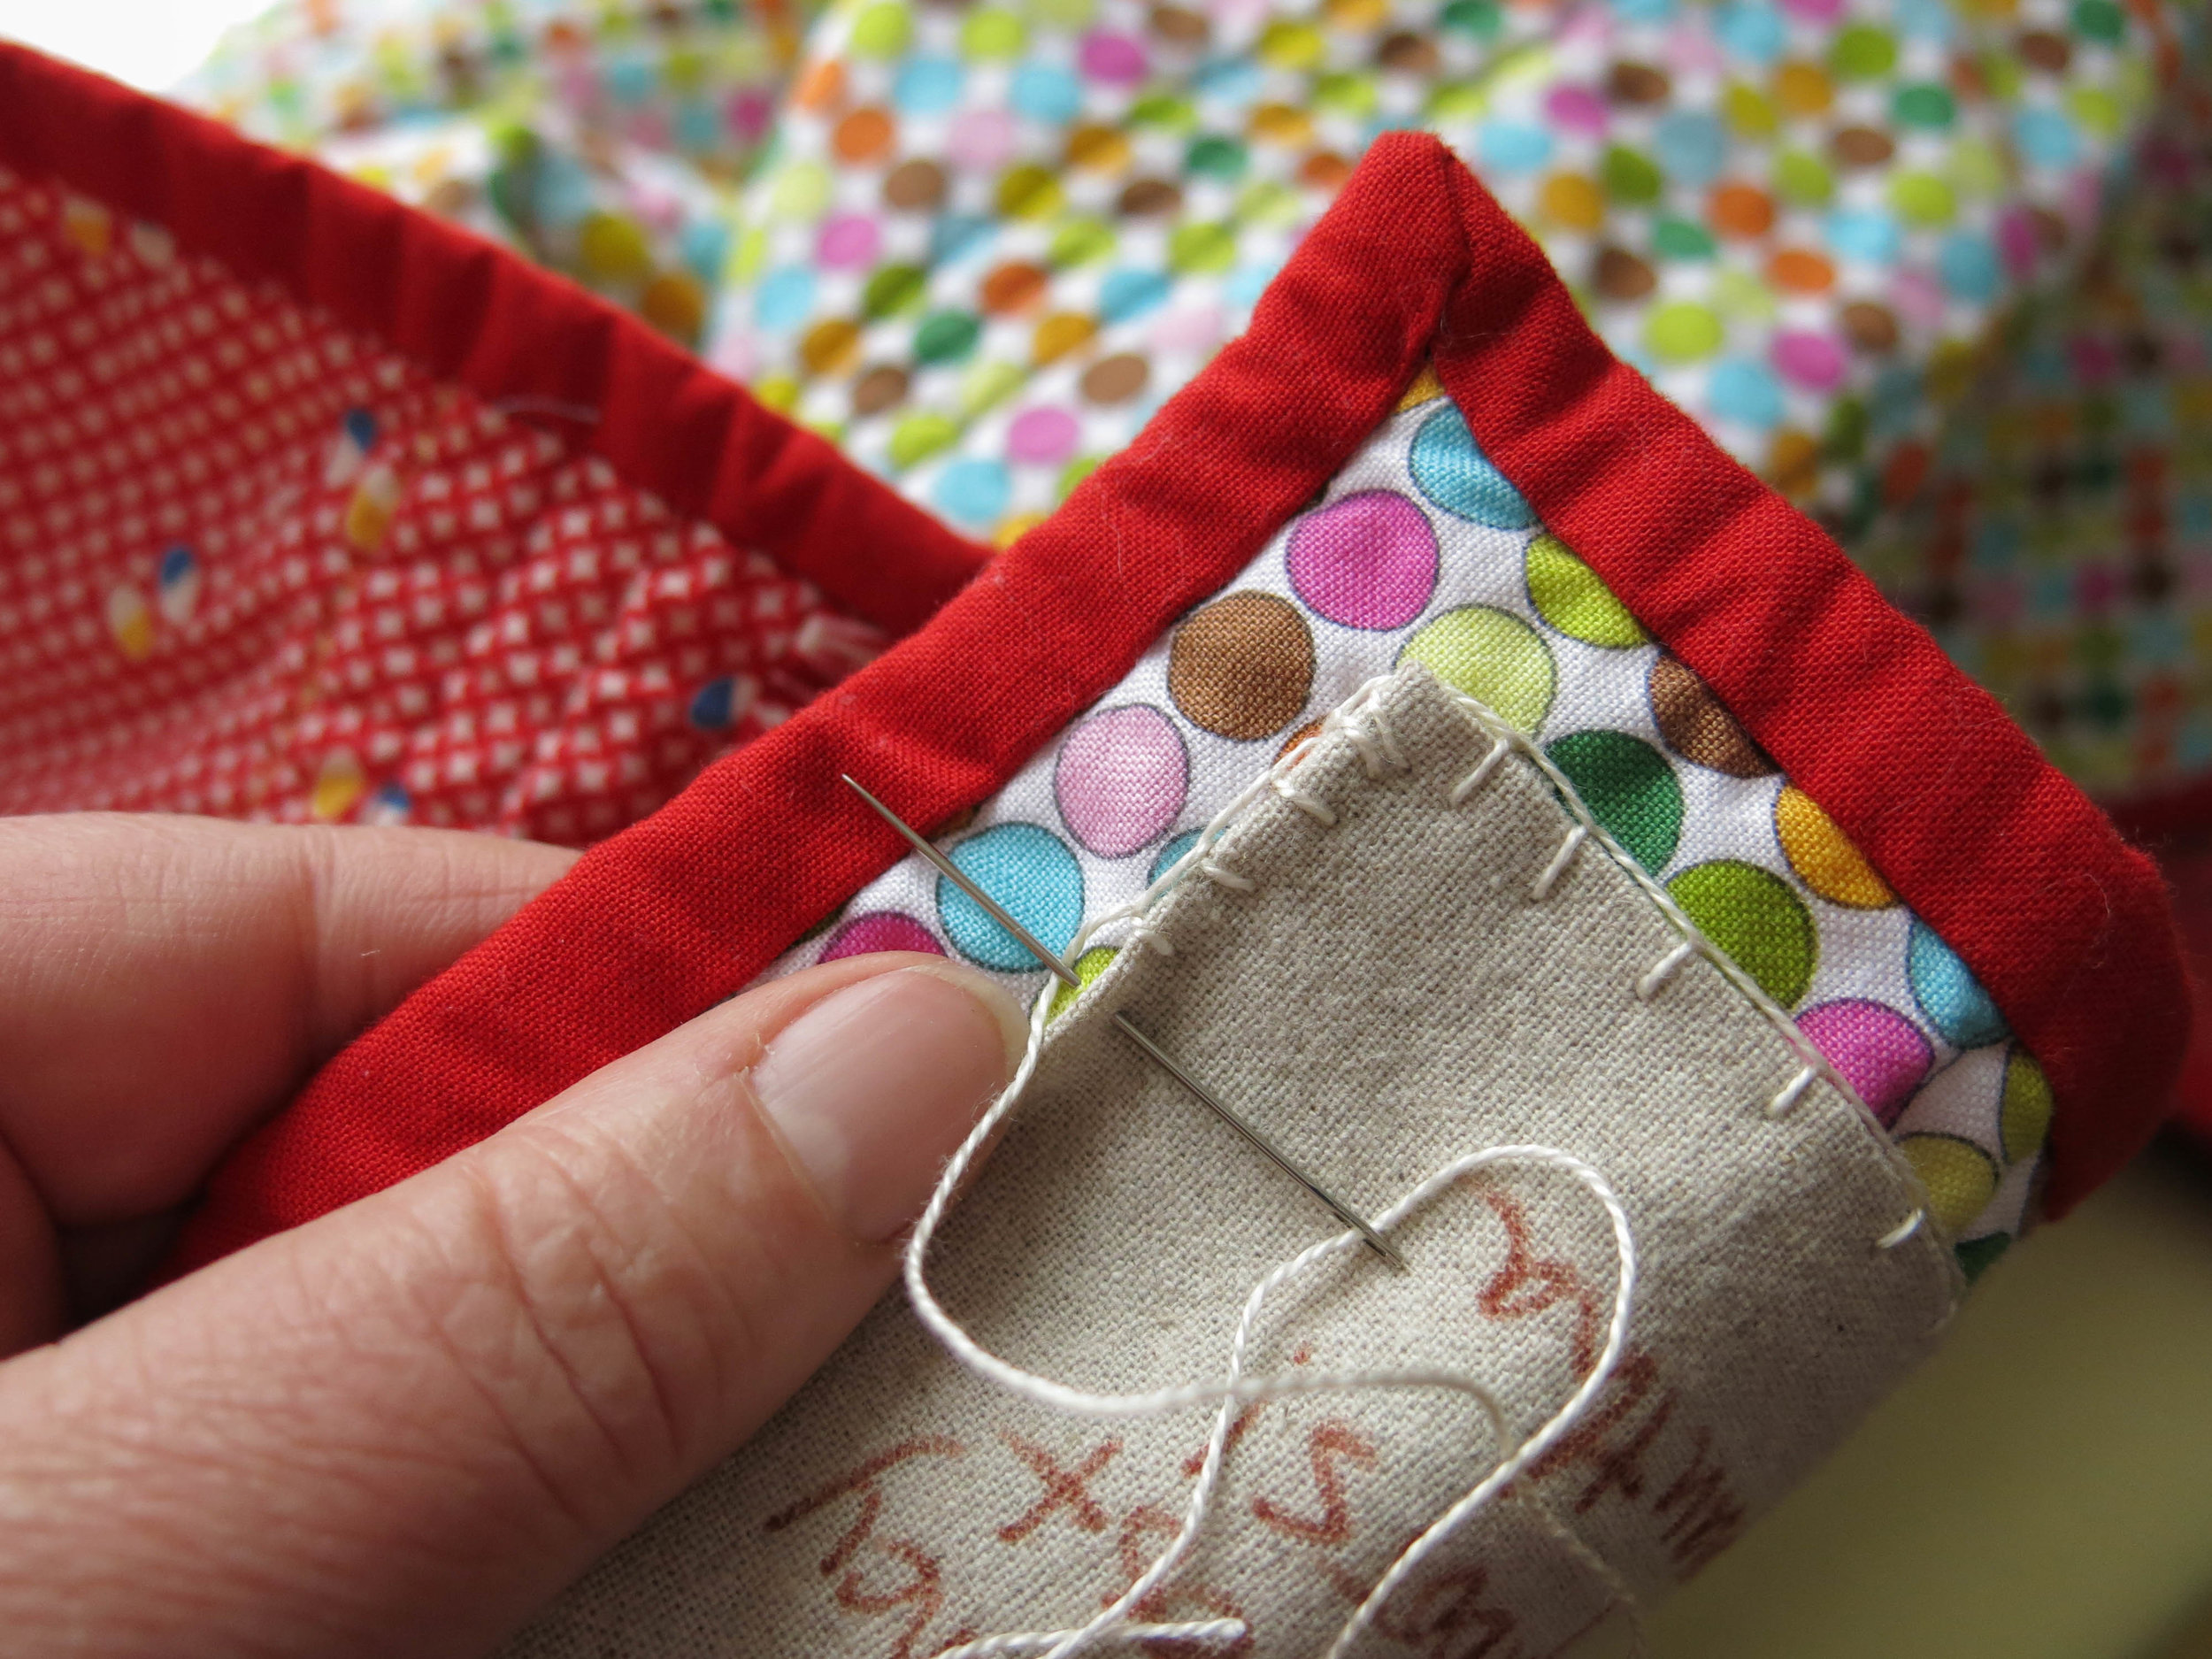 I like putting labels on my quilts. I dream of the journeys they will take, and the story a future user will tell about their history....